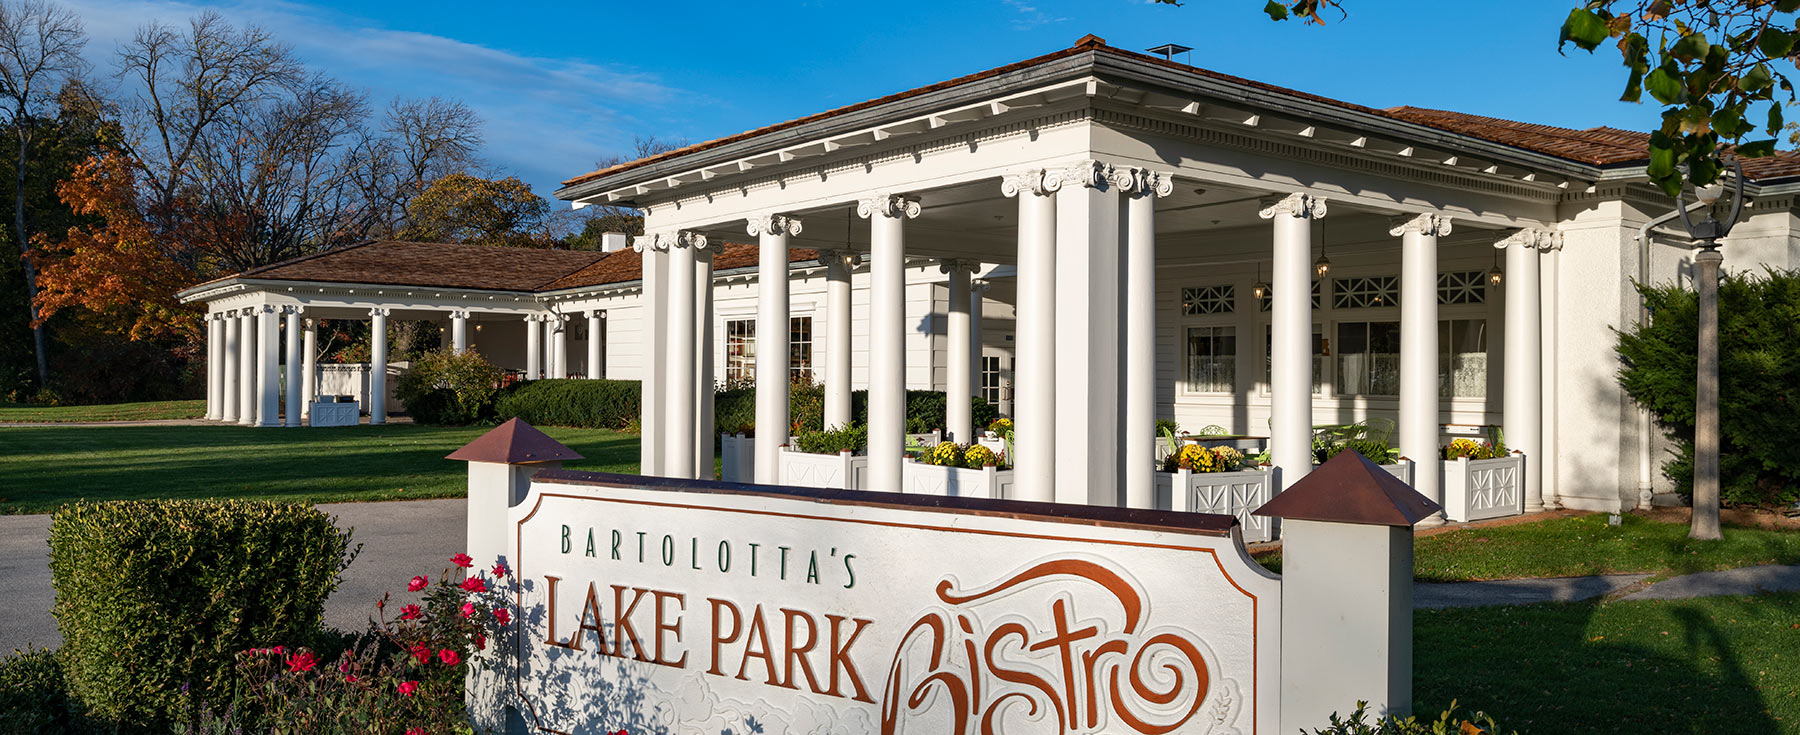 Join us at Lake Park Bistro!